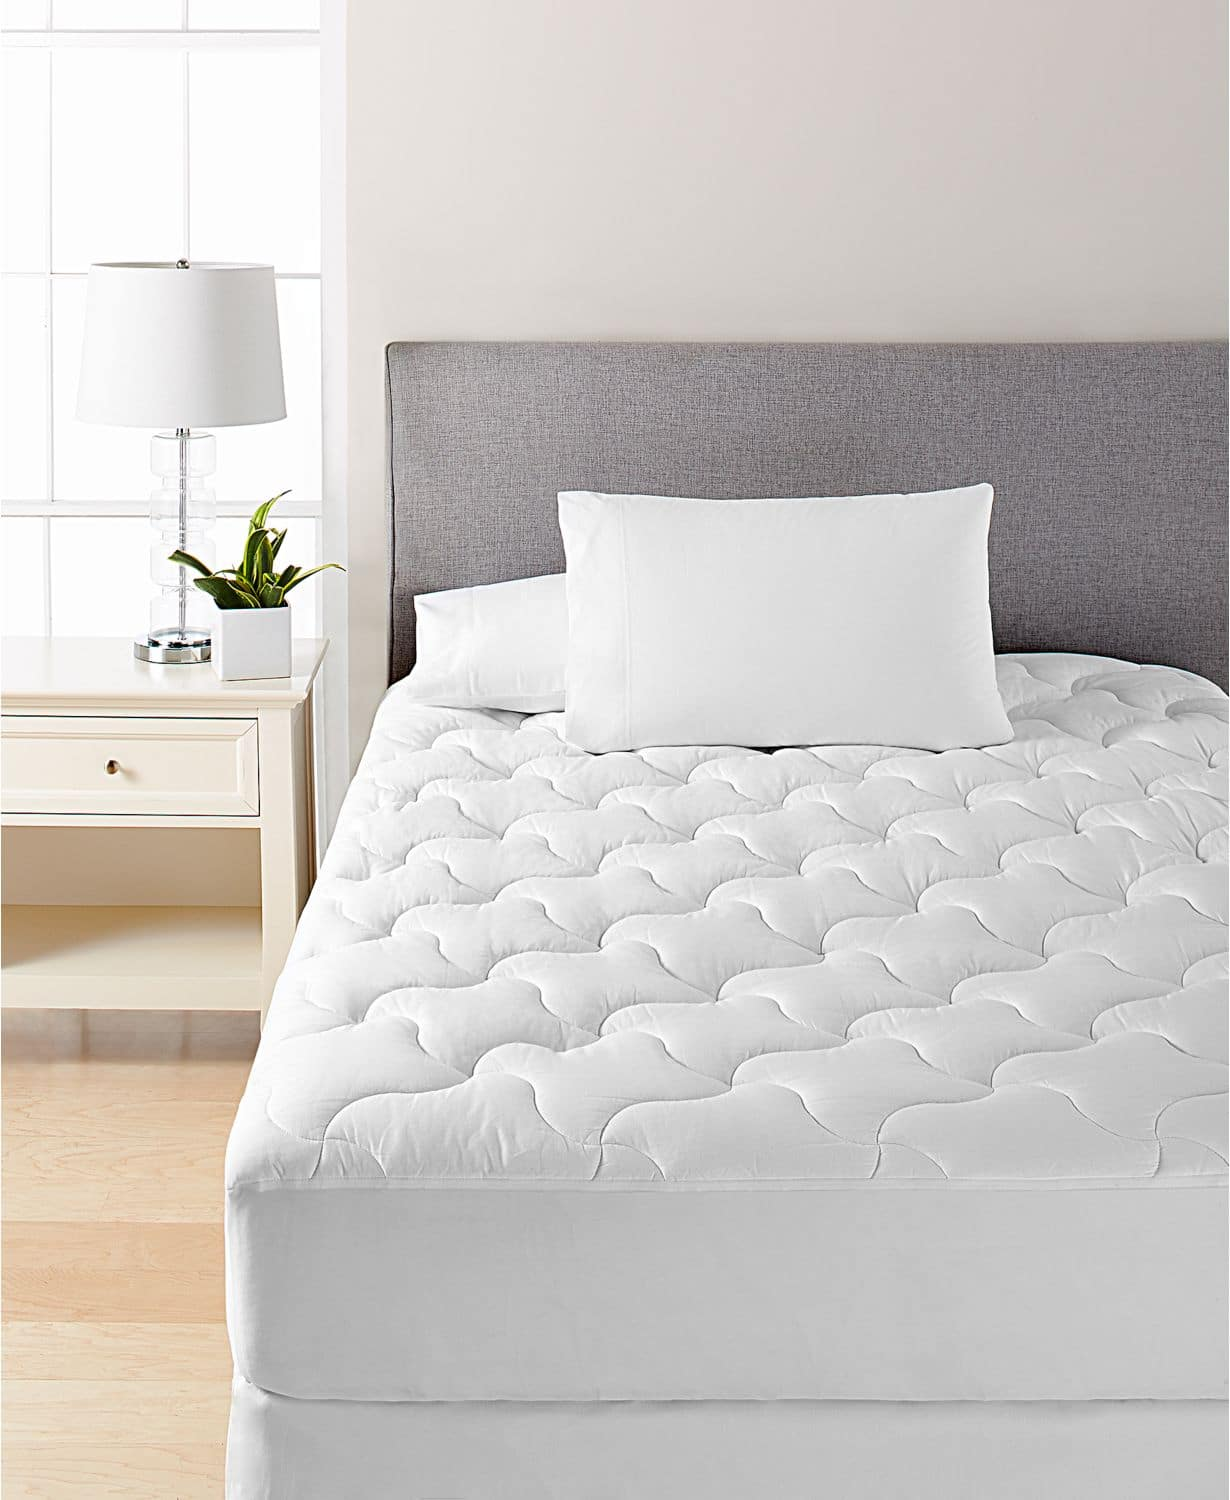 Dream Science Quilted Cotton Mattress Pad by Martha Stewart: Twin $11, Full $17, Queen $23, King $29 + free store pickup at Macys